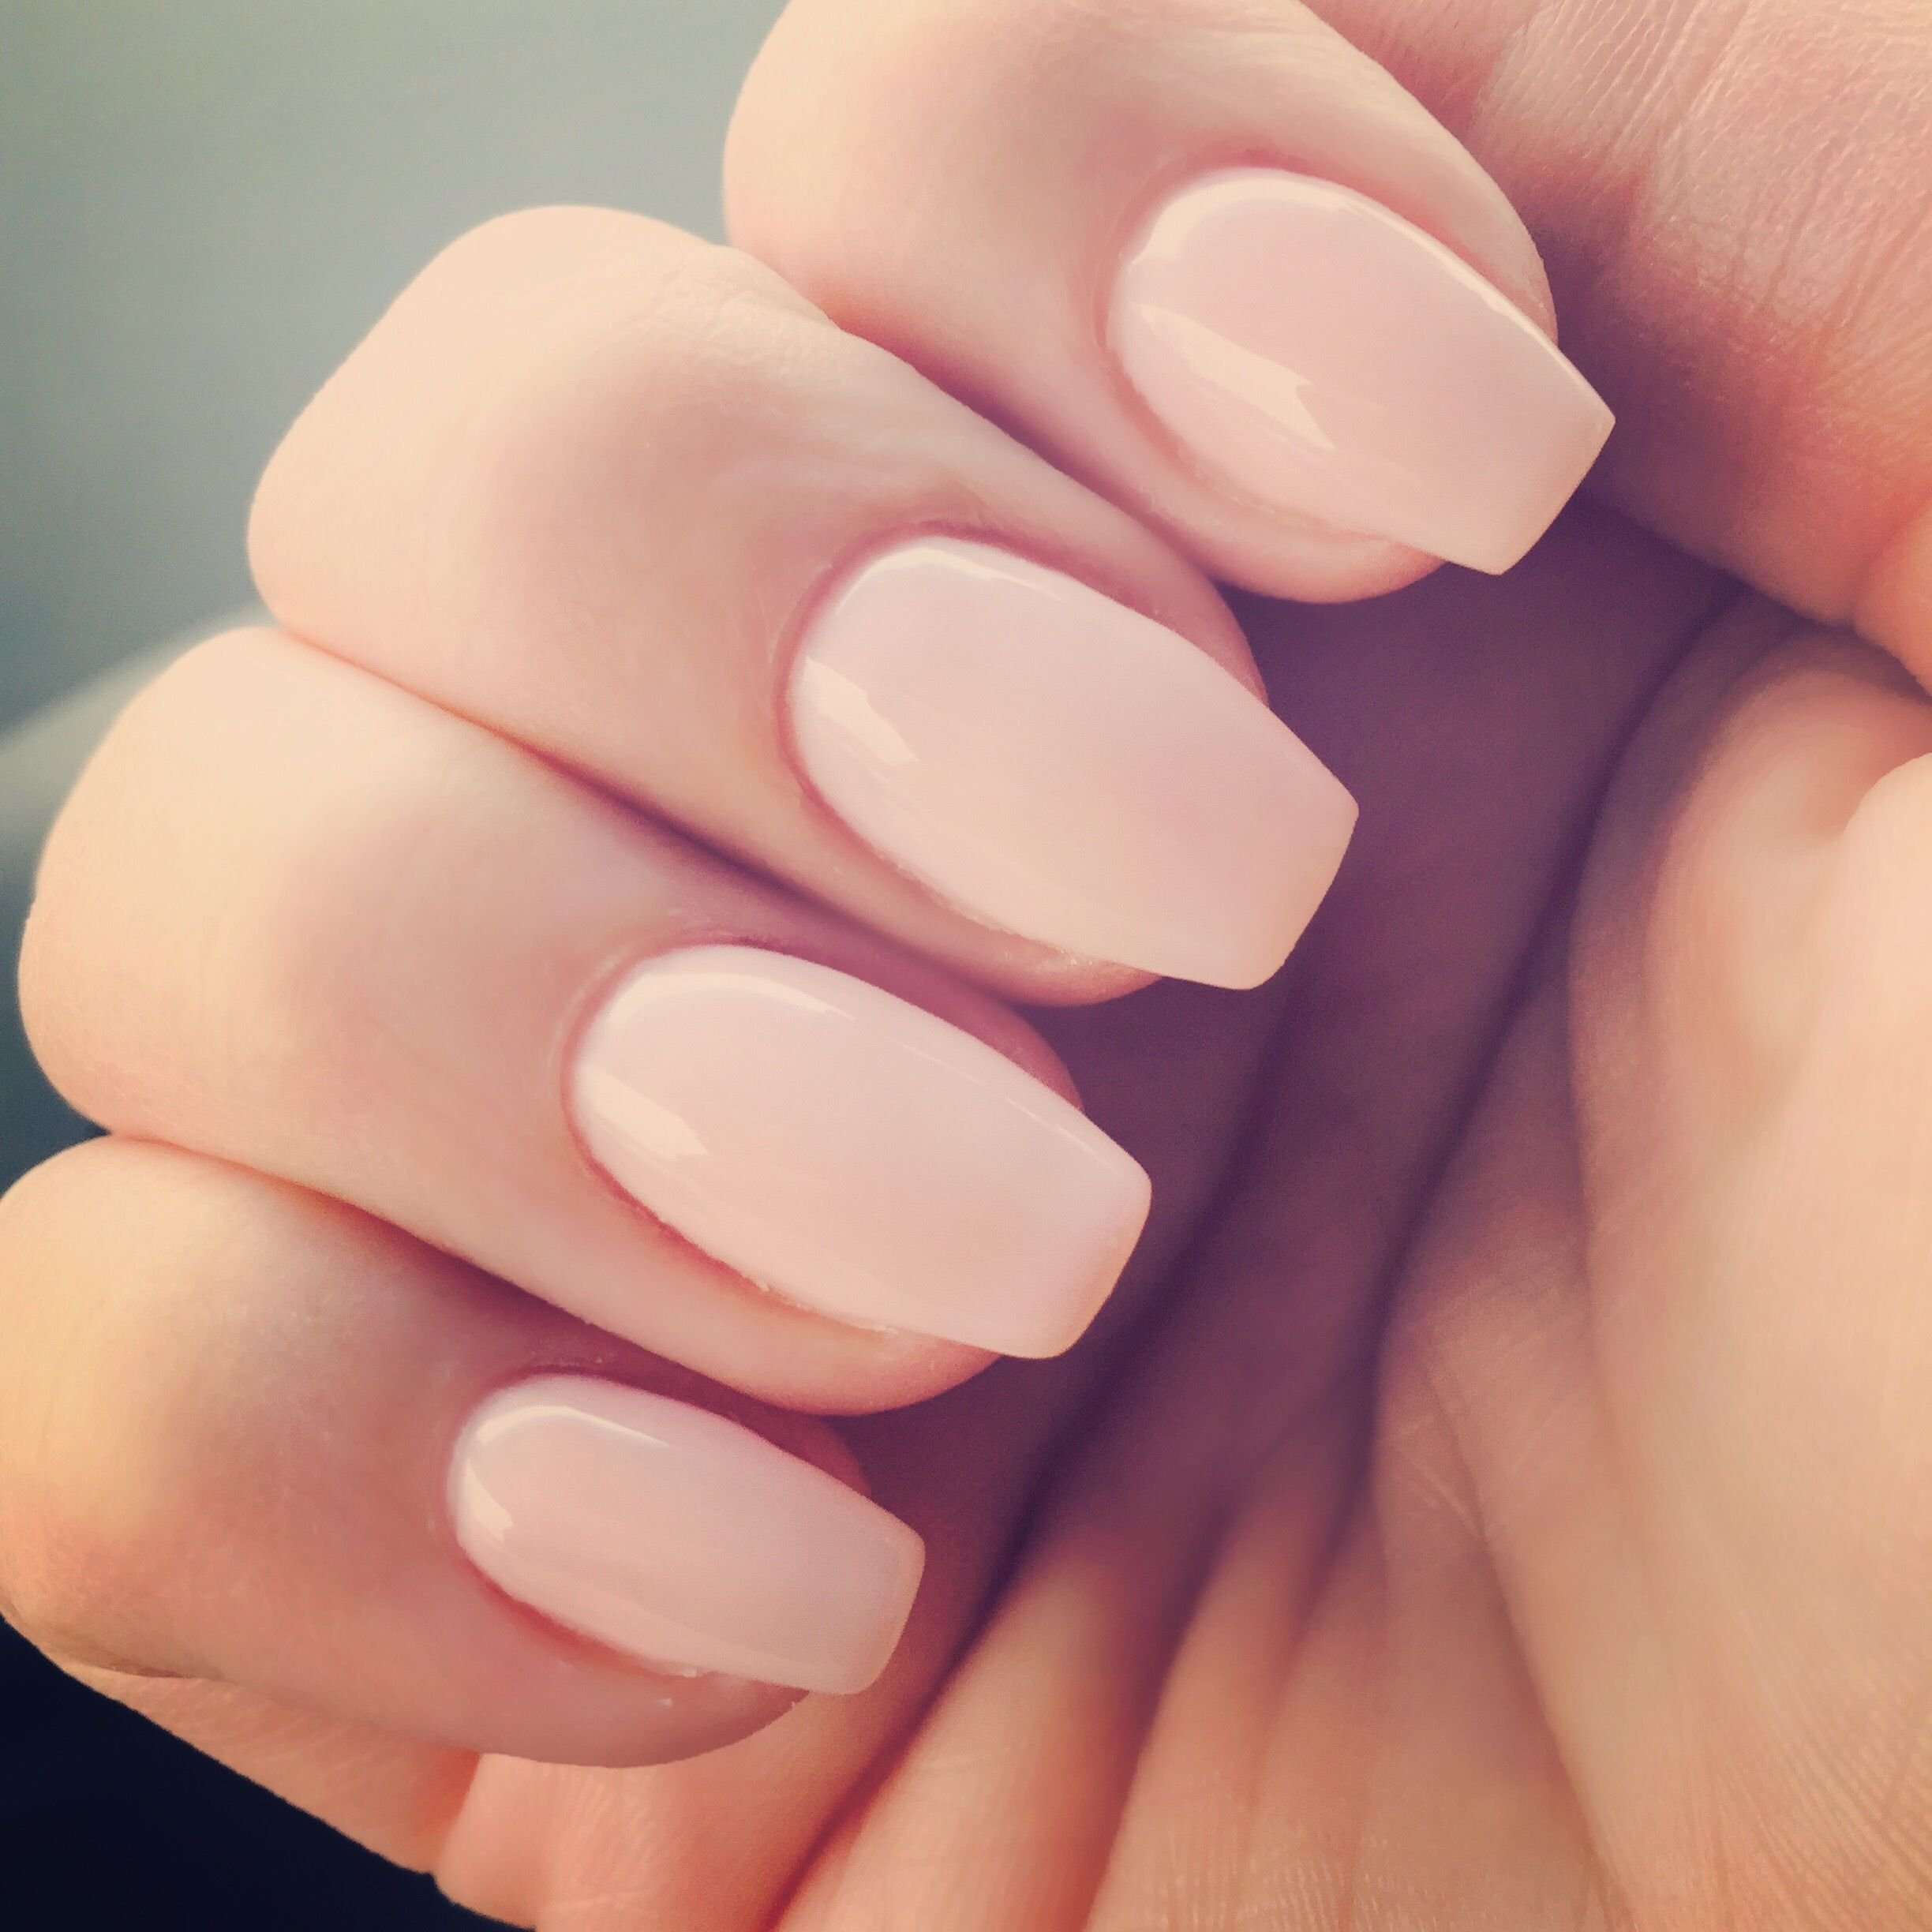 Short Coffin Shaped Gel Nails Color Is Opi Bubble Bath Short Acrylic Nails Coffin Shape Nails Gel Nail Colors